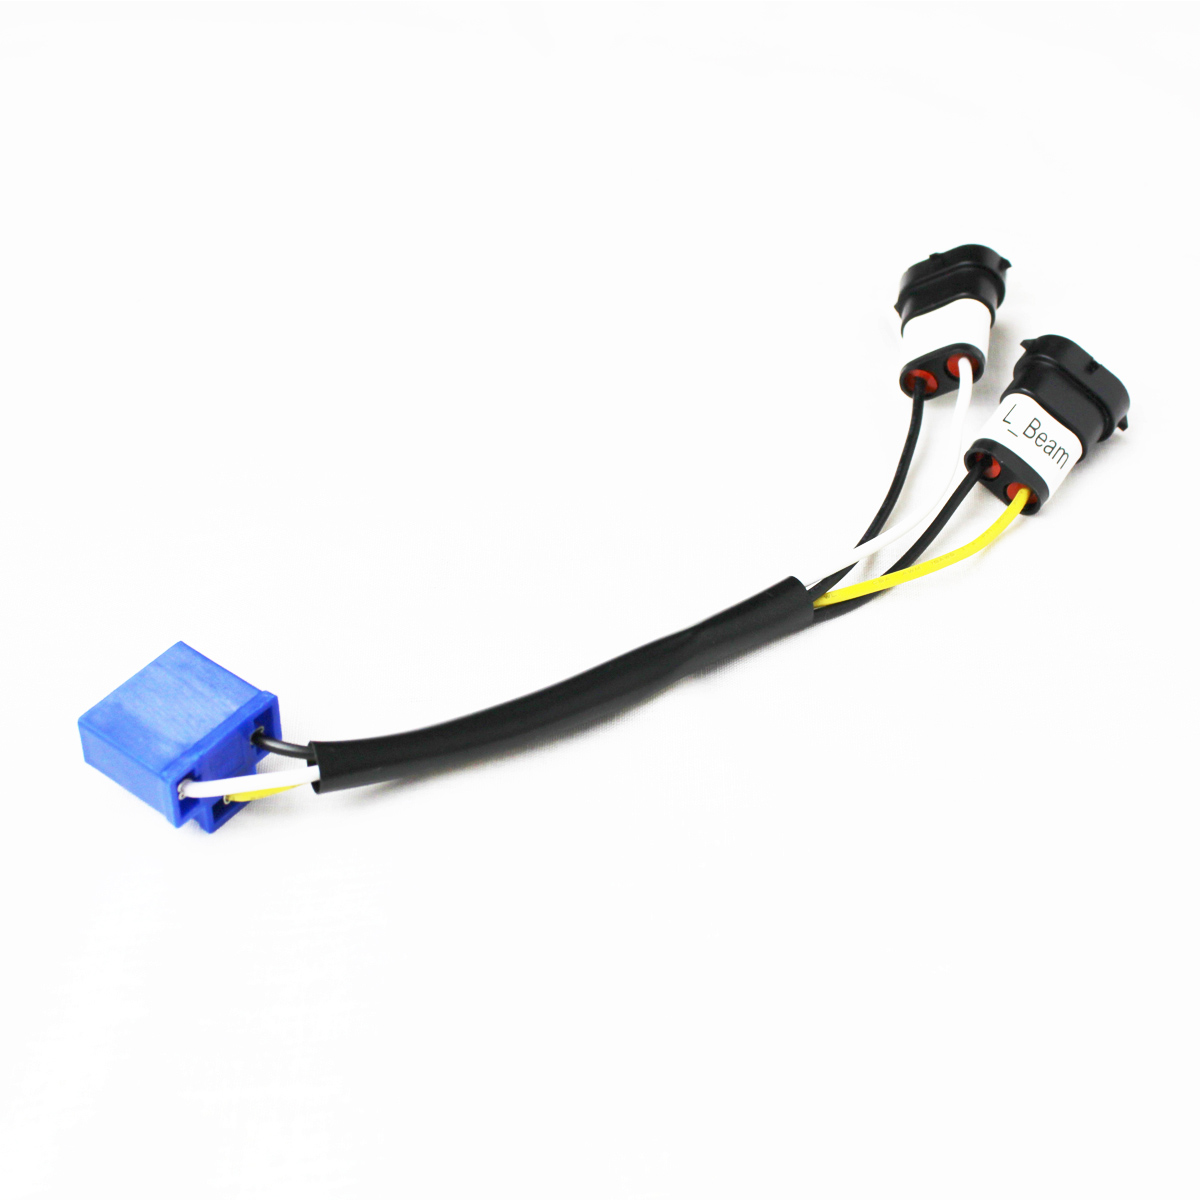 HogWorkz LED Headlight Wire Harness Adapter